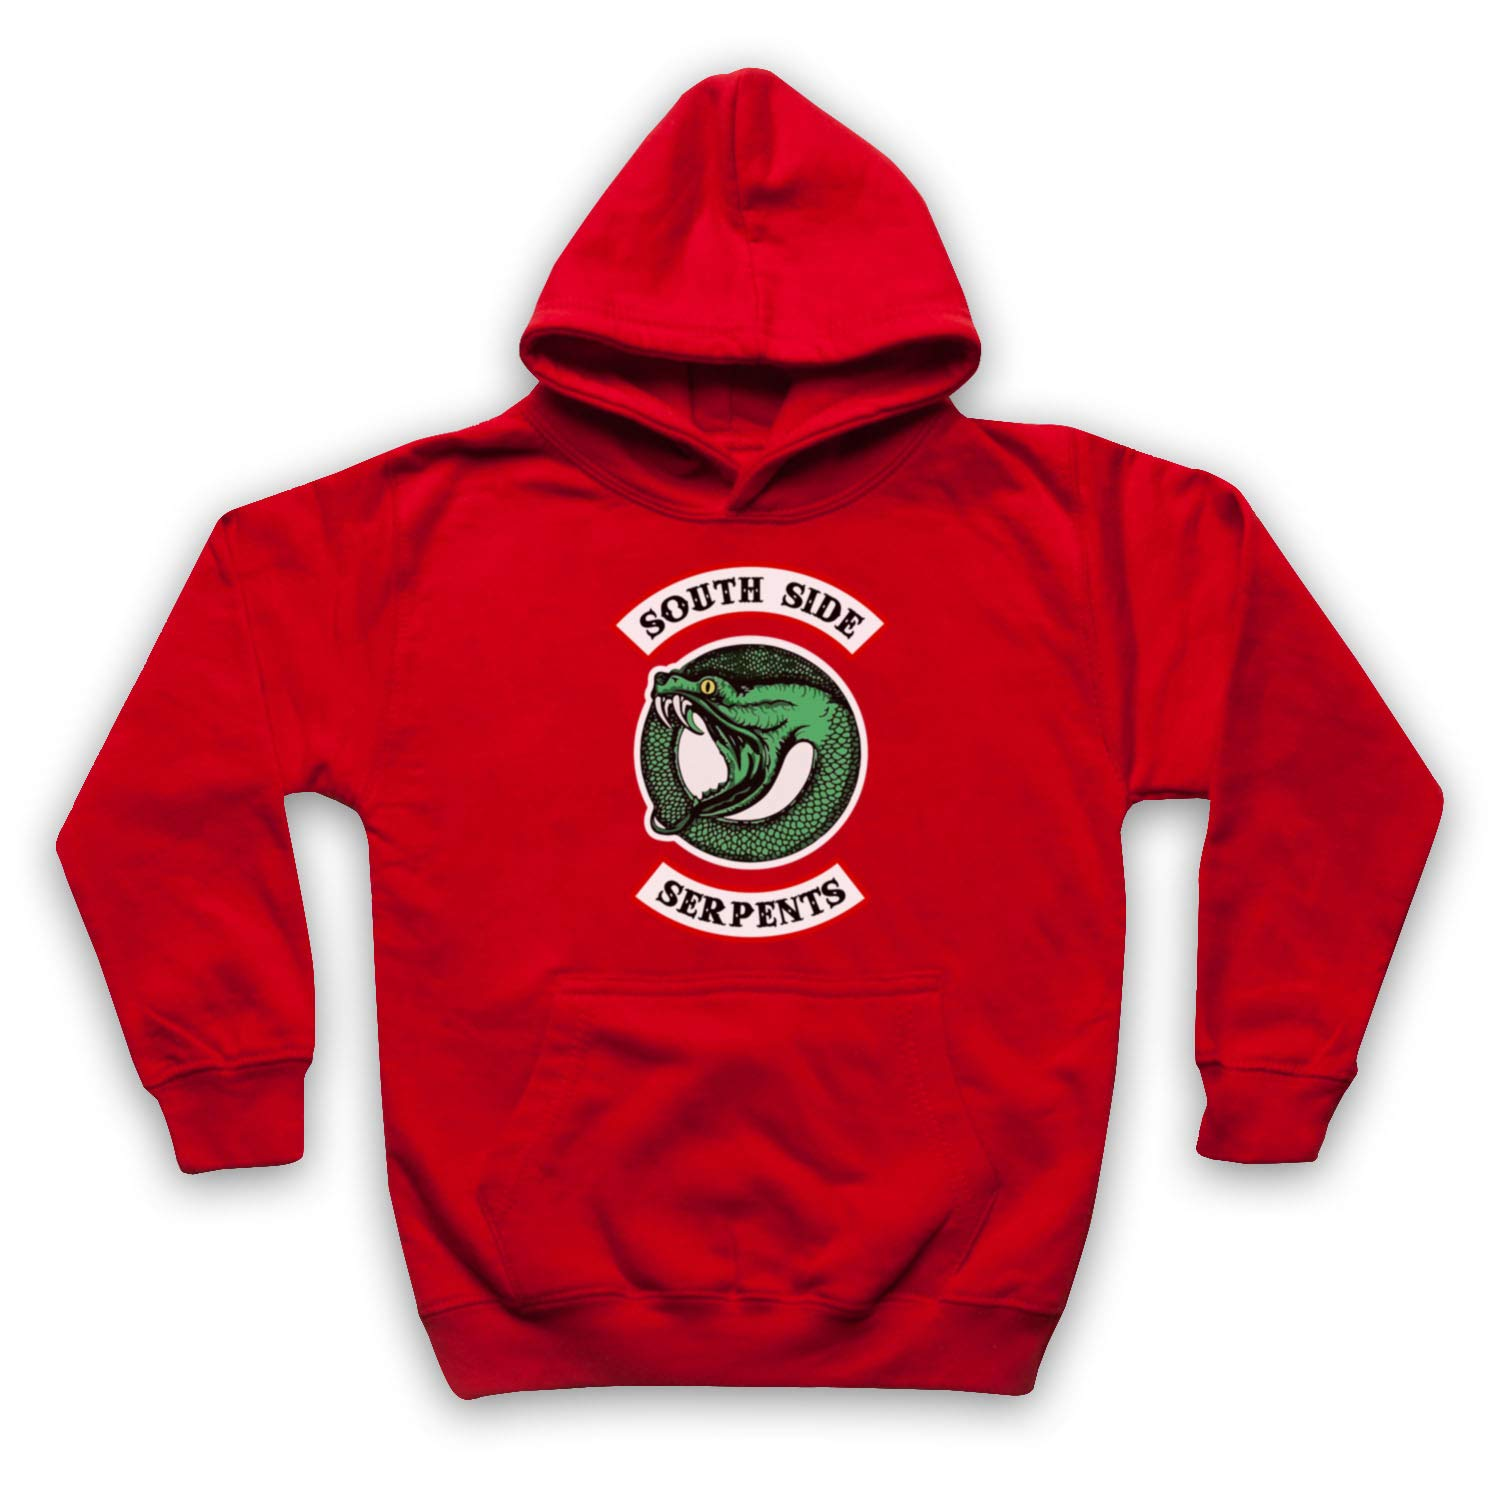 Inspired Apparel Inspired by Riverdale South Side Serpents Circle Logo Unofficial Kids Hoodie